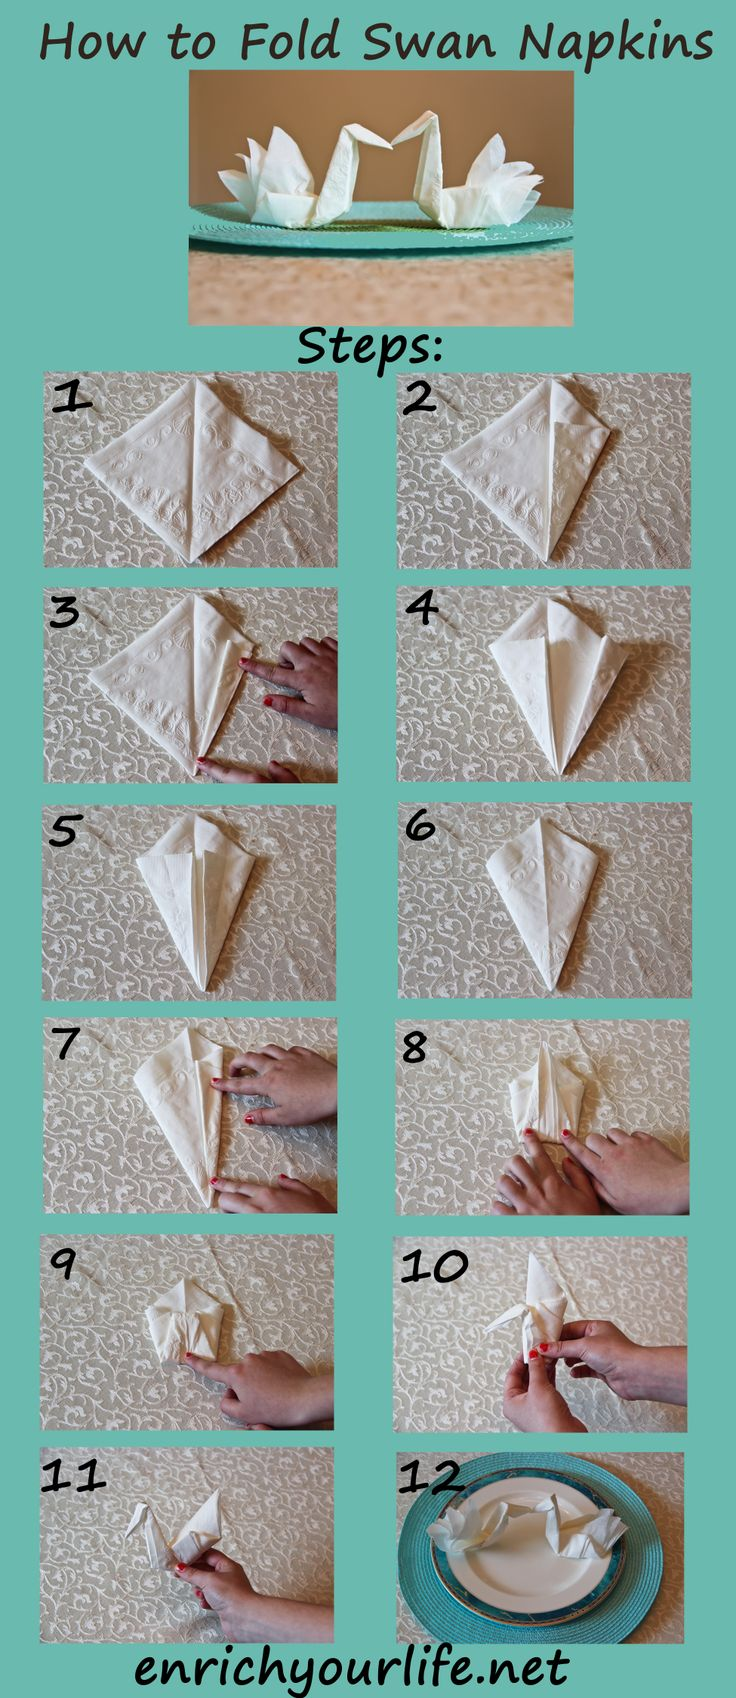 How To Make Table Napkin Designs napkin folding How To Fold A Swan Napkin Step By Step Enrichyourlifenet Enrichyourlife01gmail